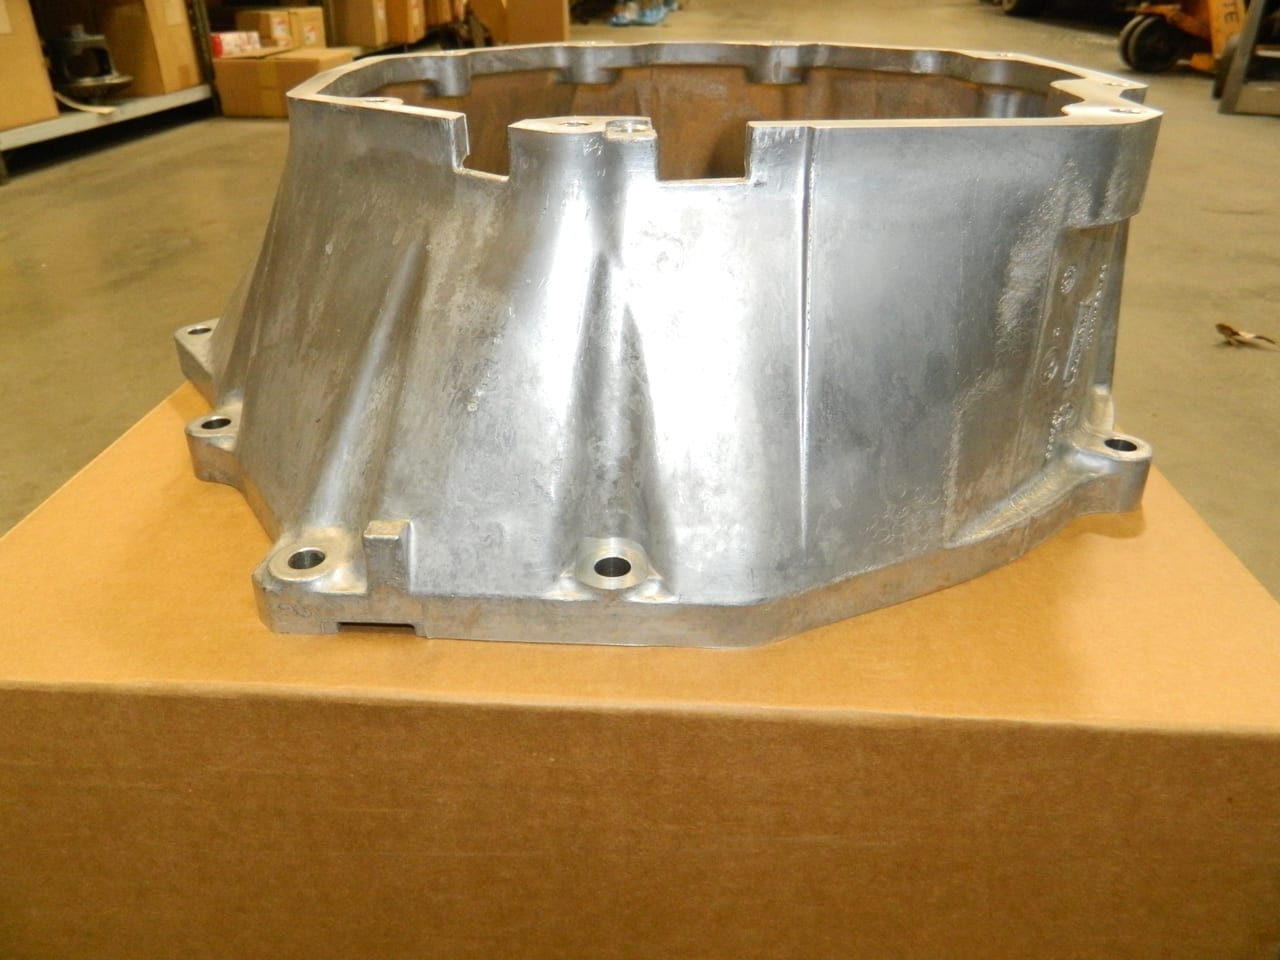 T56 Camaro Firebird 1998-2002 LS-1 6 Speed Transmission Bellhousing Tremec